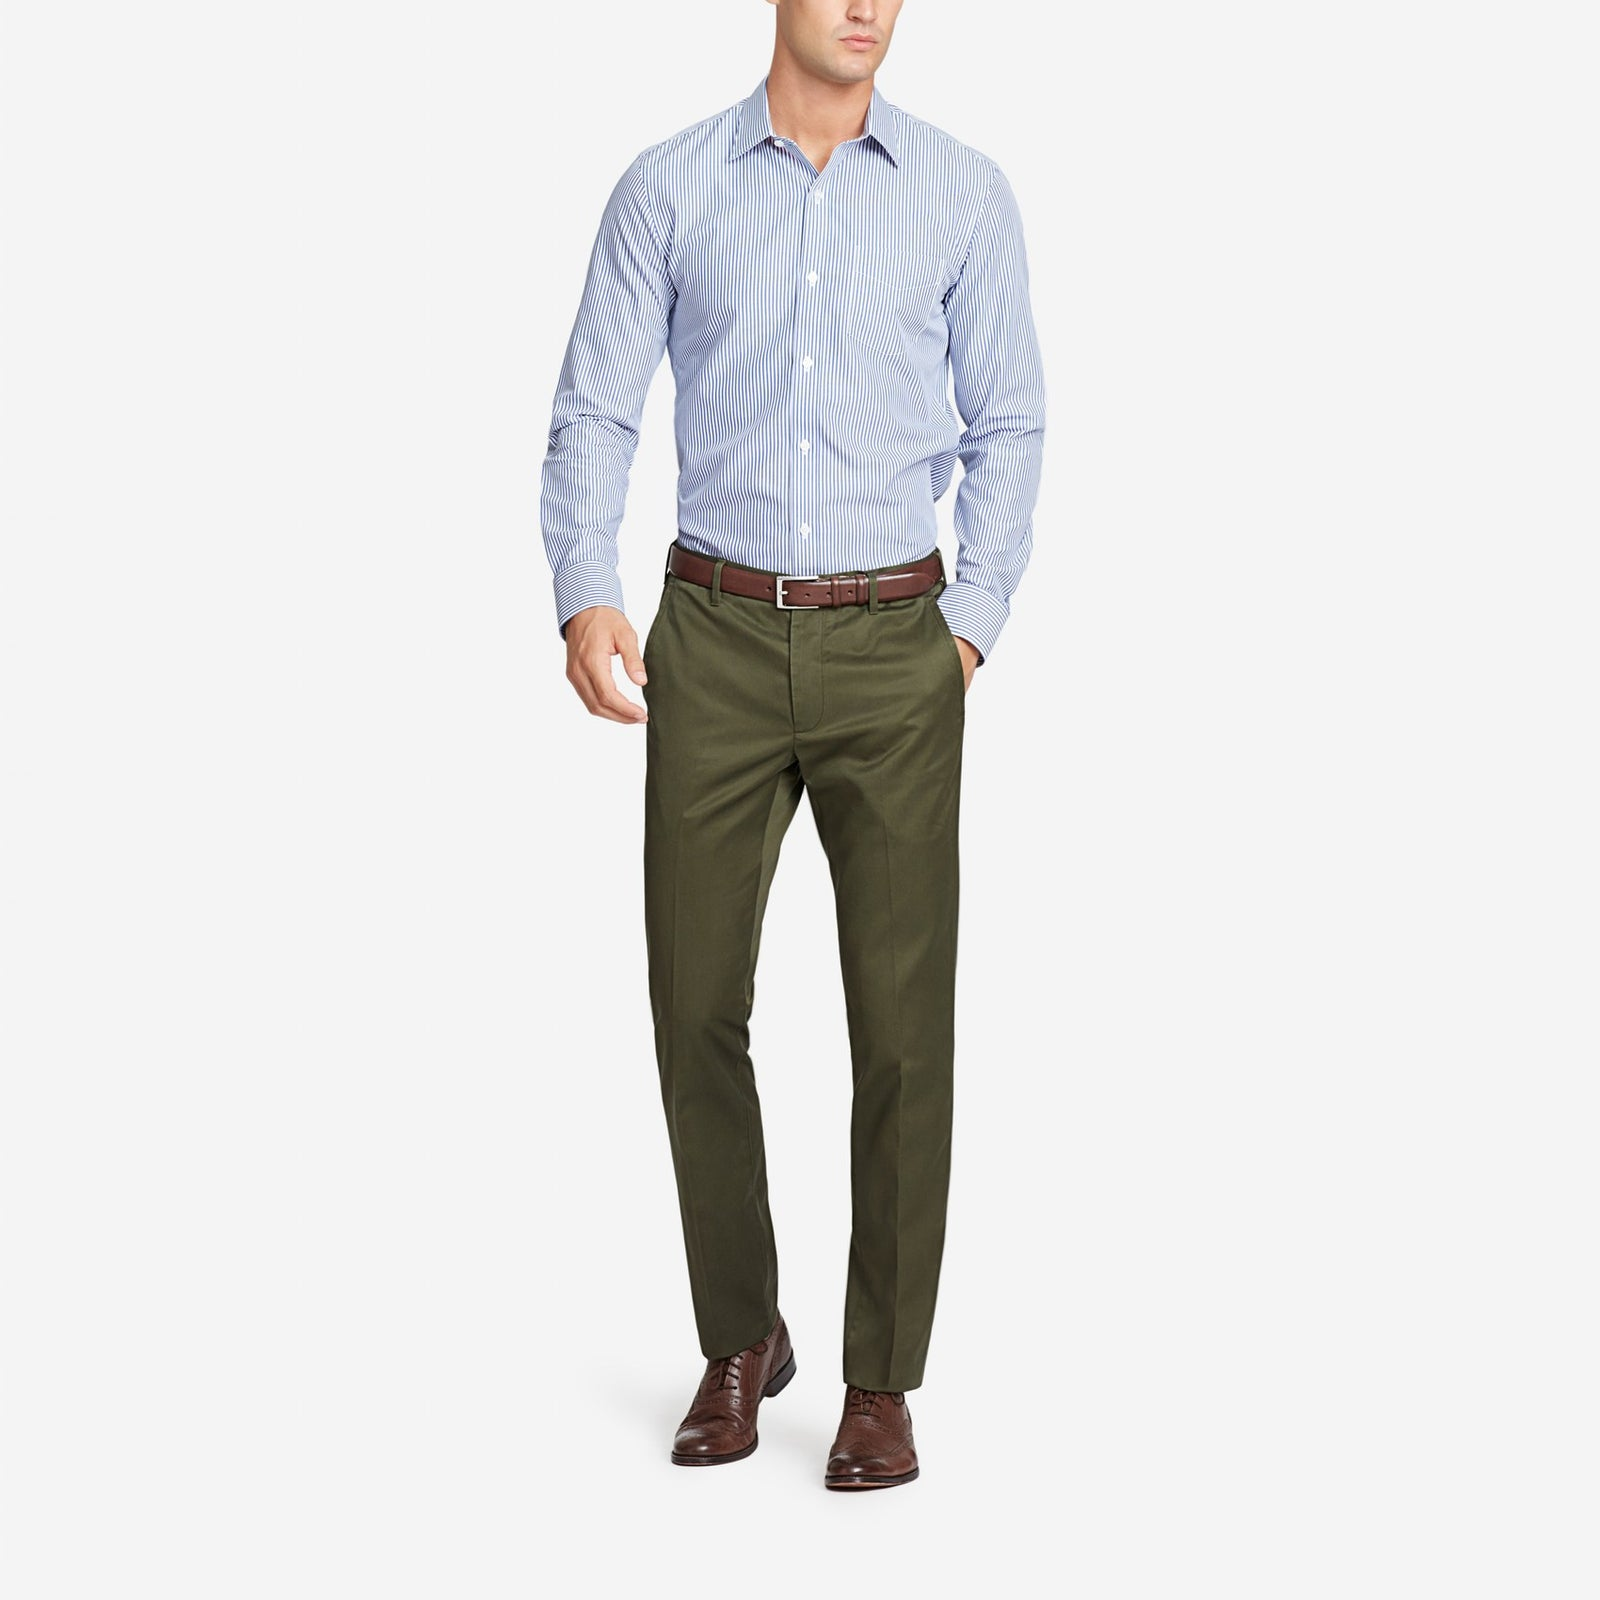 Olive Bespoke Tailored Cotton Trousers